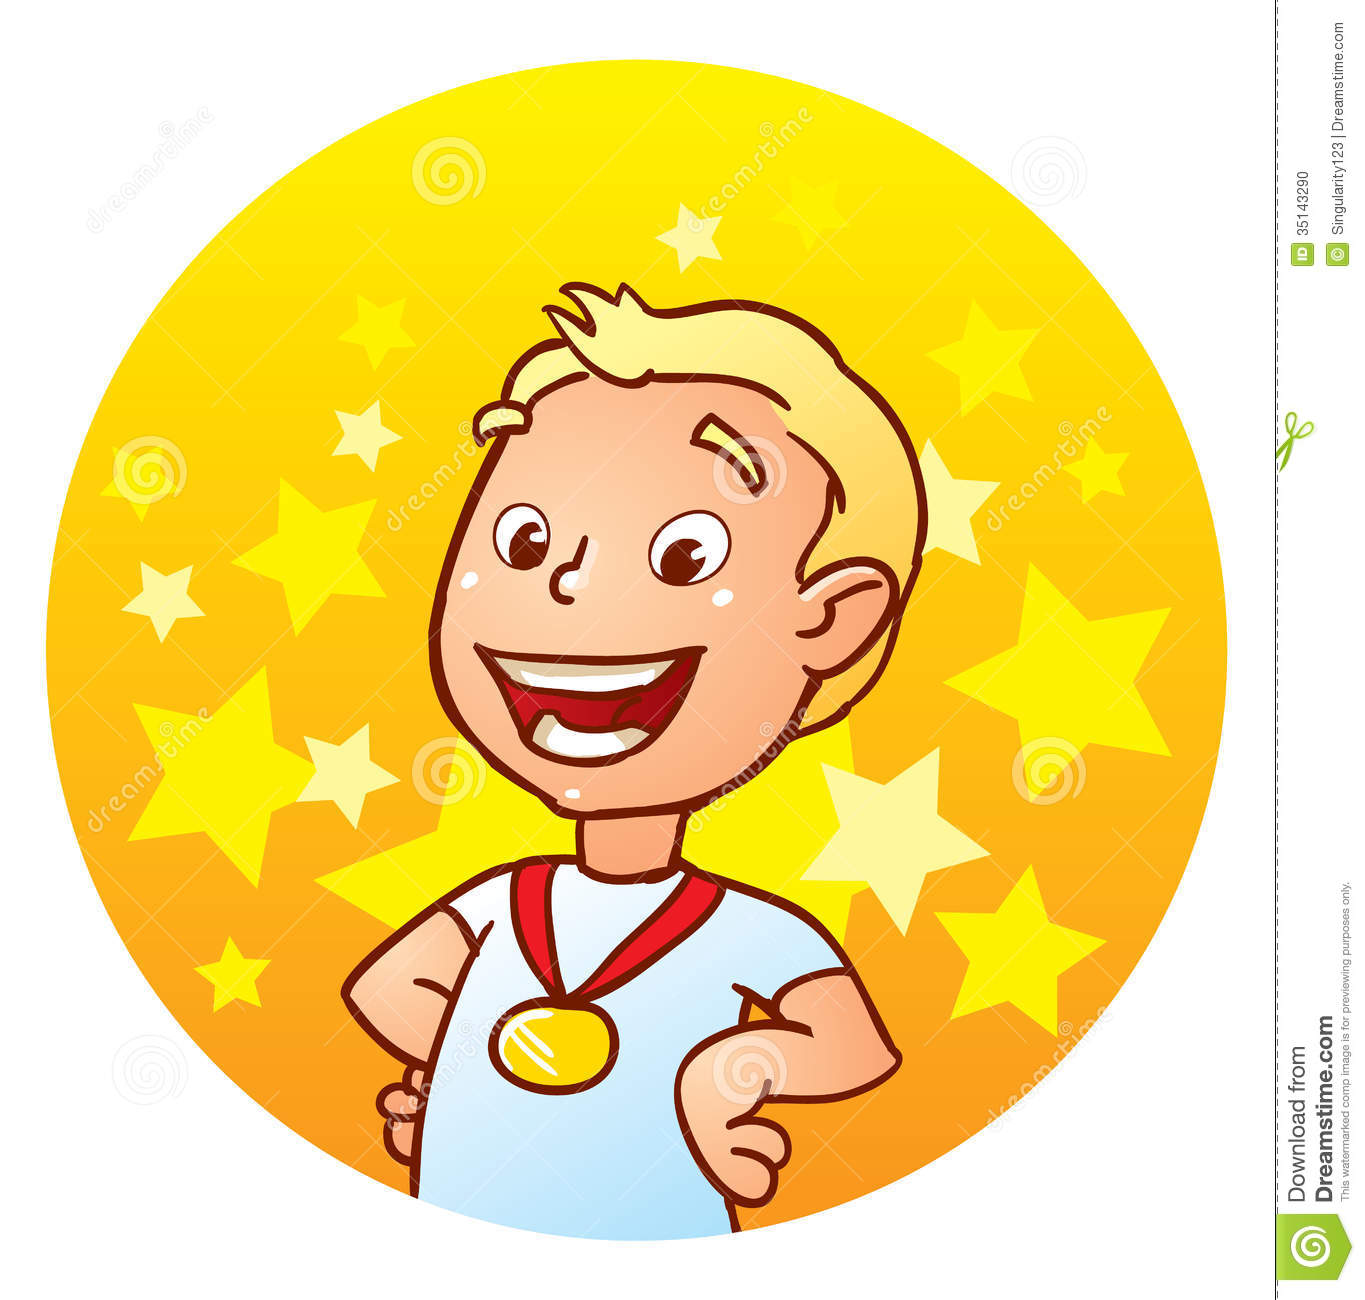 Campion clipart free Campion clipart 20 free Cliparts | Download images on Clipground 2019 free